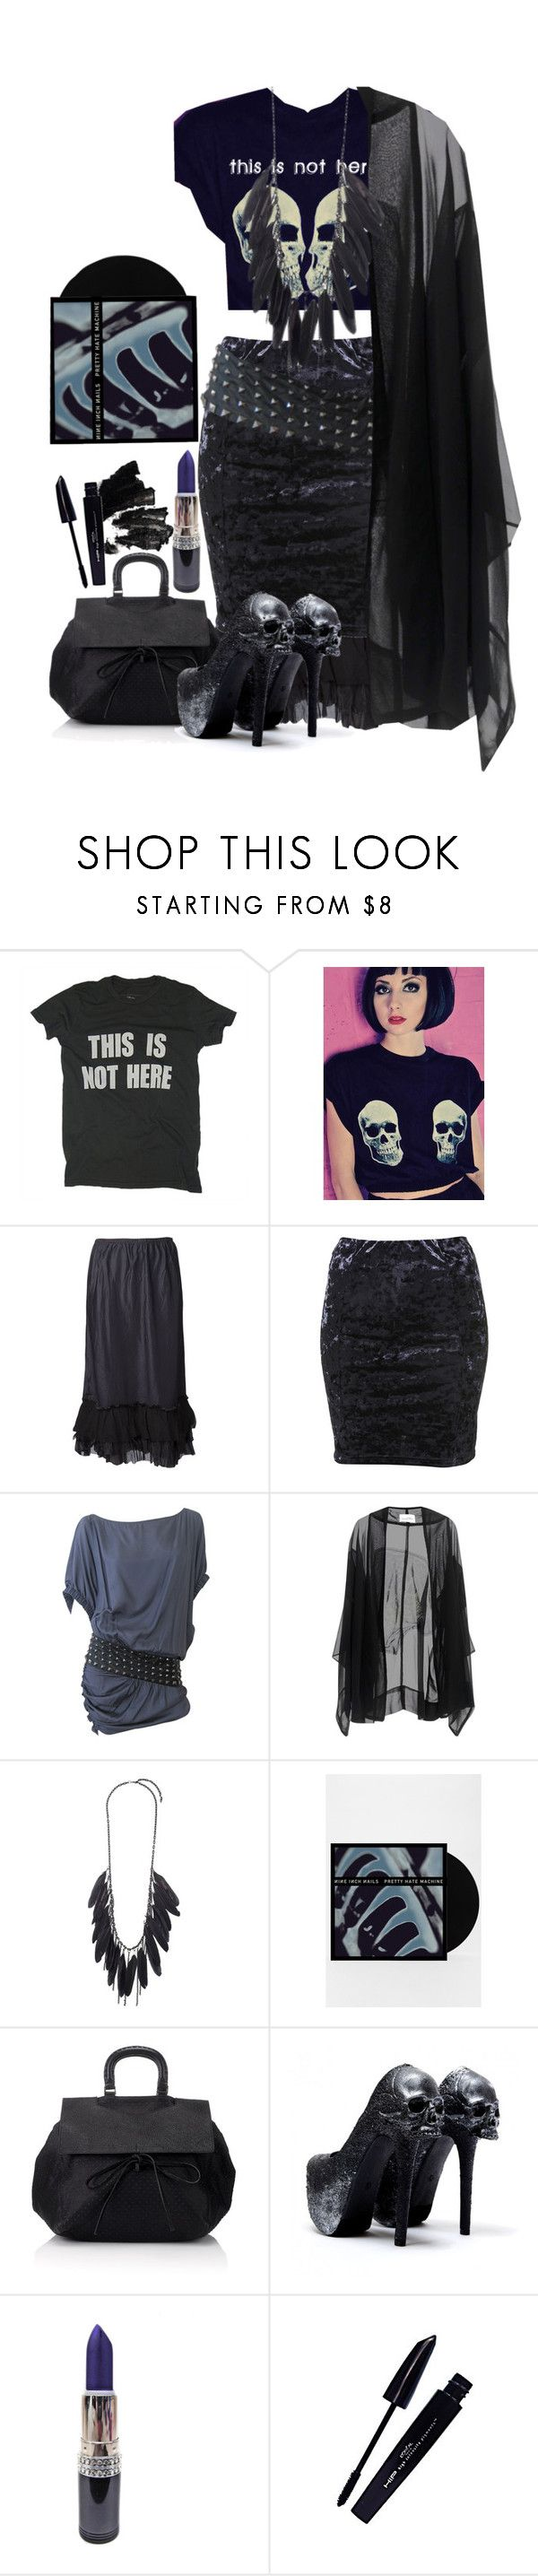 """""""Untitled #767"""" by no0ne ❤ liked on Polyvore featuring Worn Free, Dosa, Manning Cartell, Anna & Boy, Pauric Sweeney, MAC Cosmetics and L'Oréal Paris"""